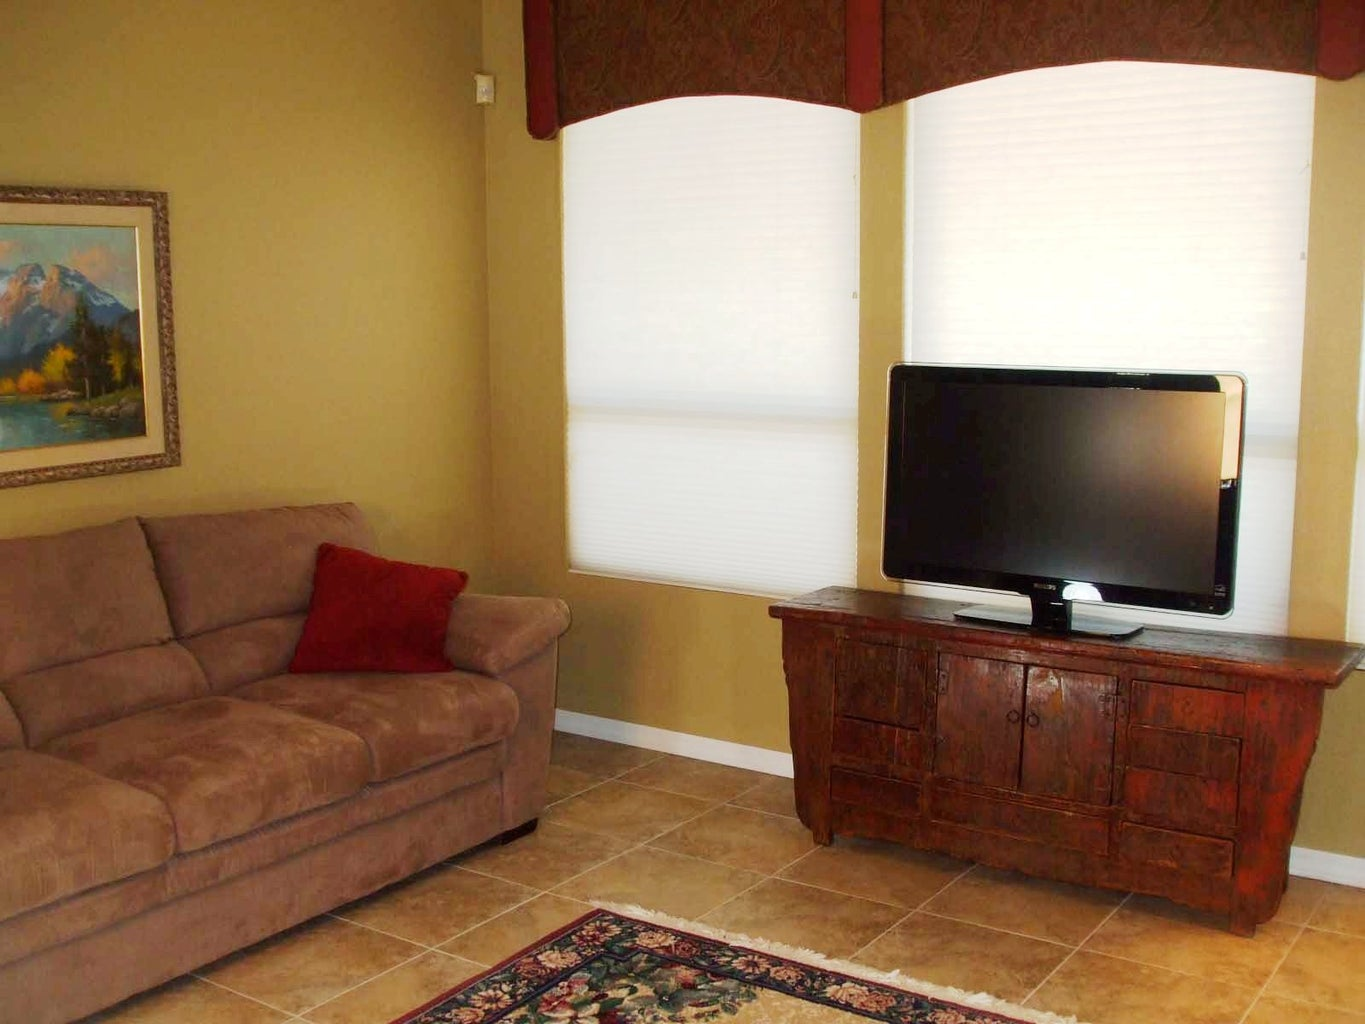 Decide Where You Want to Hide the TV